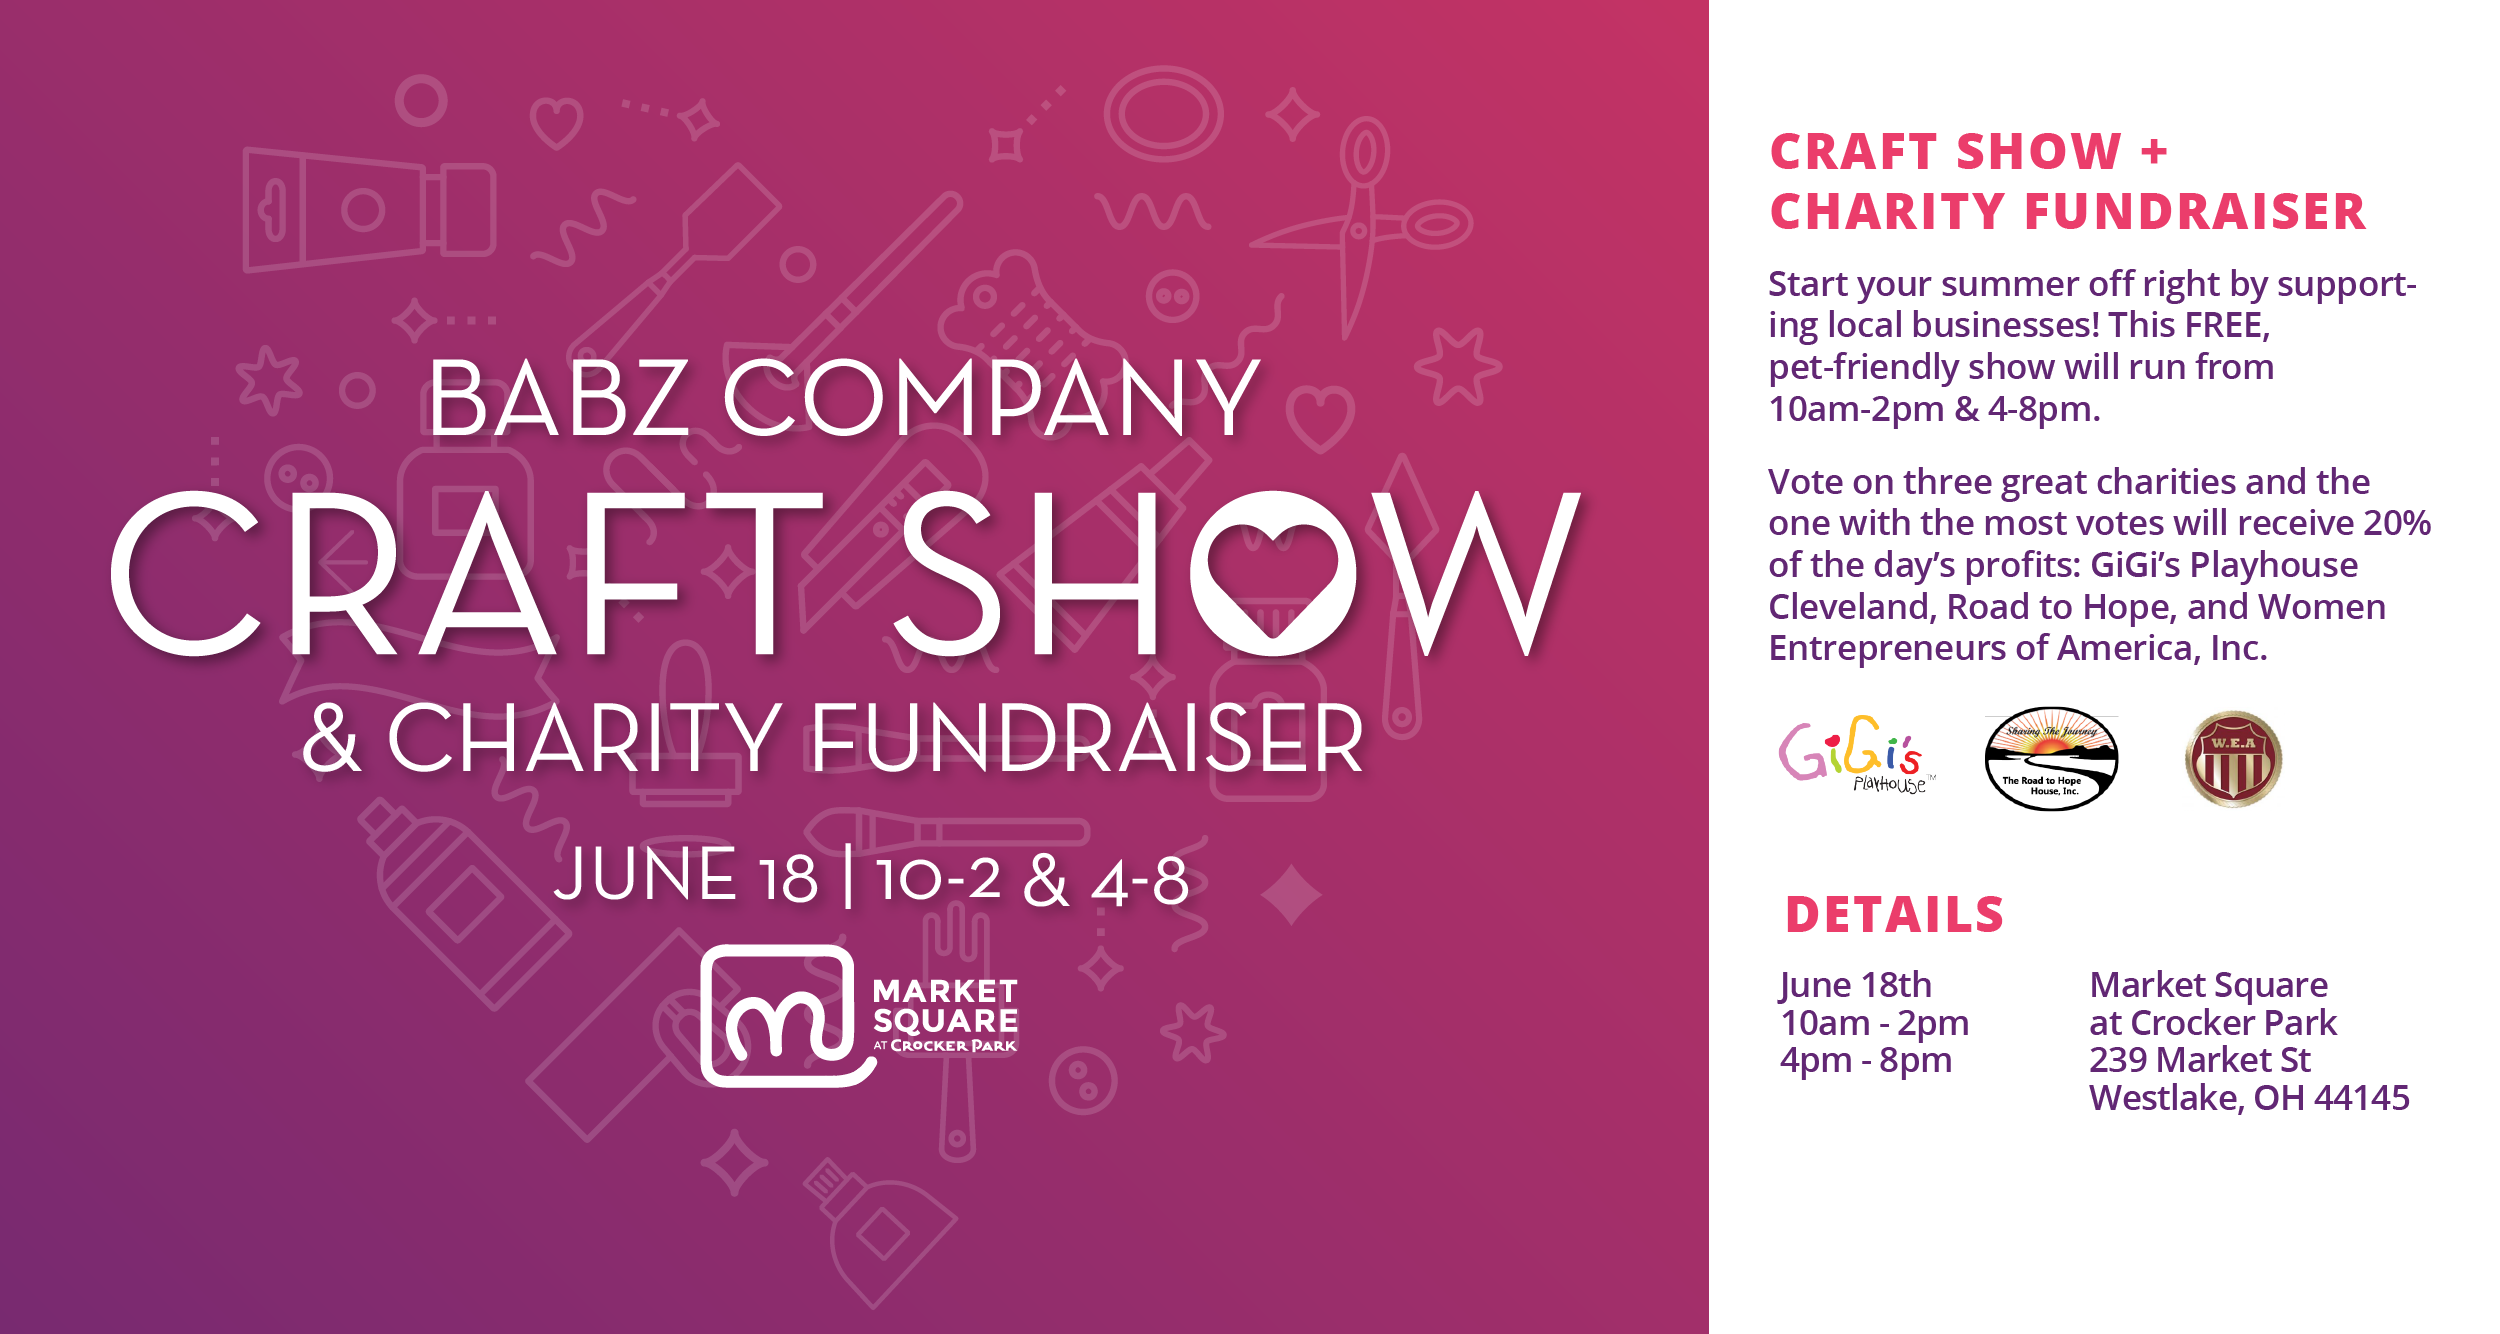 Craft Show & Charity Fundraiser